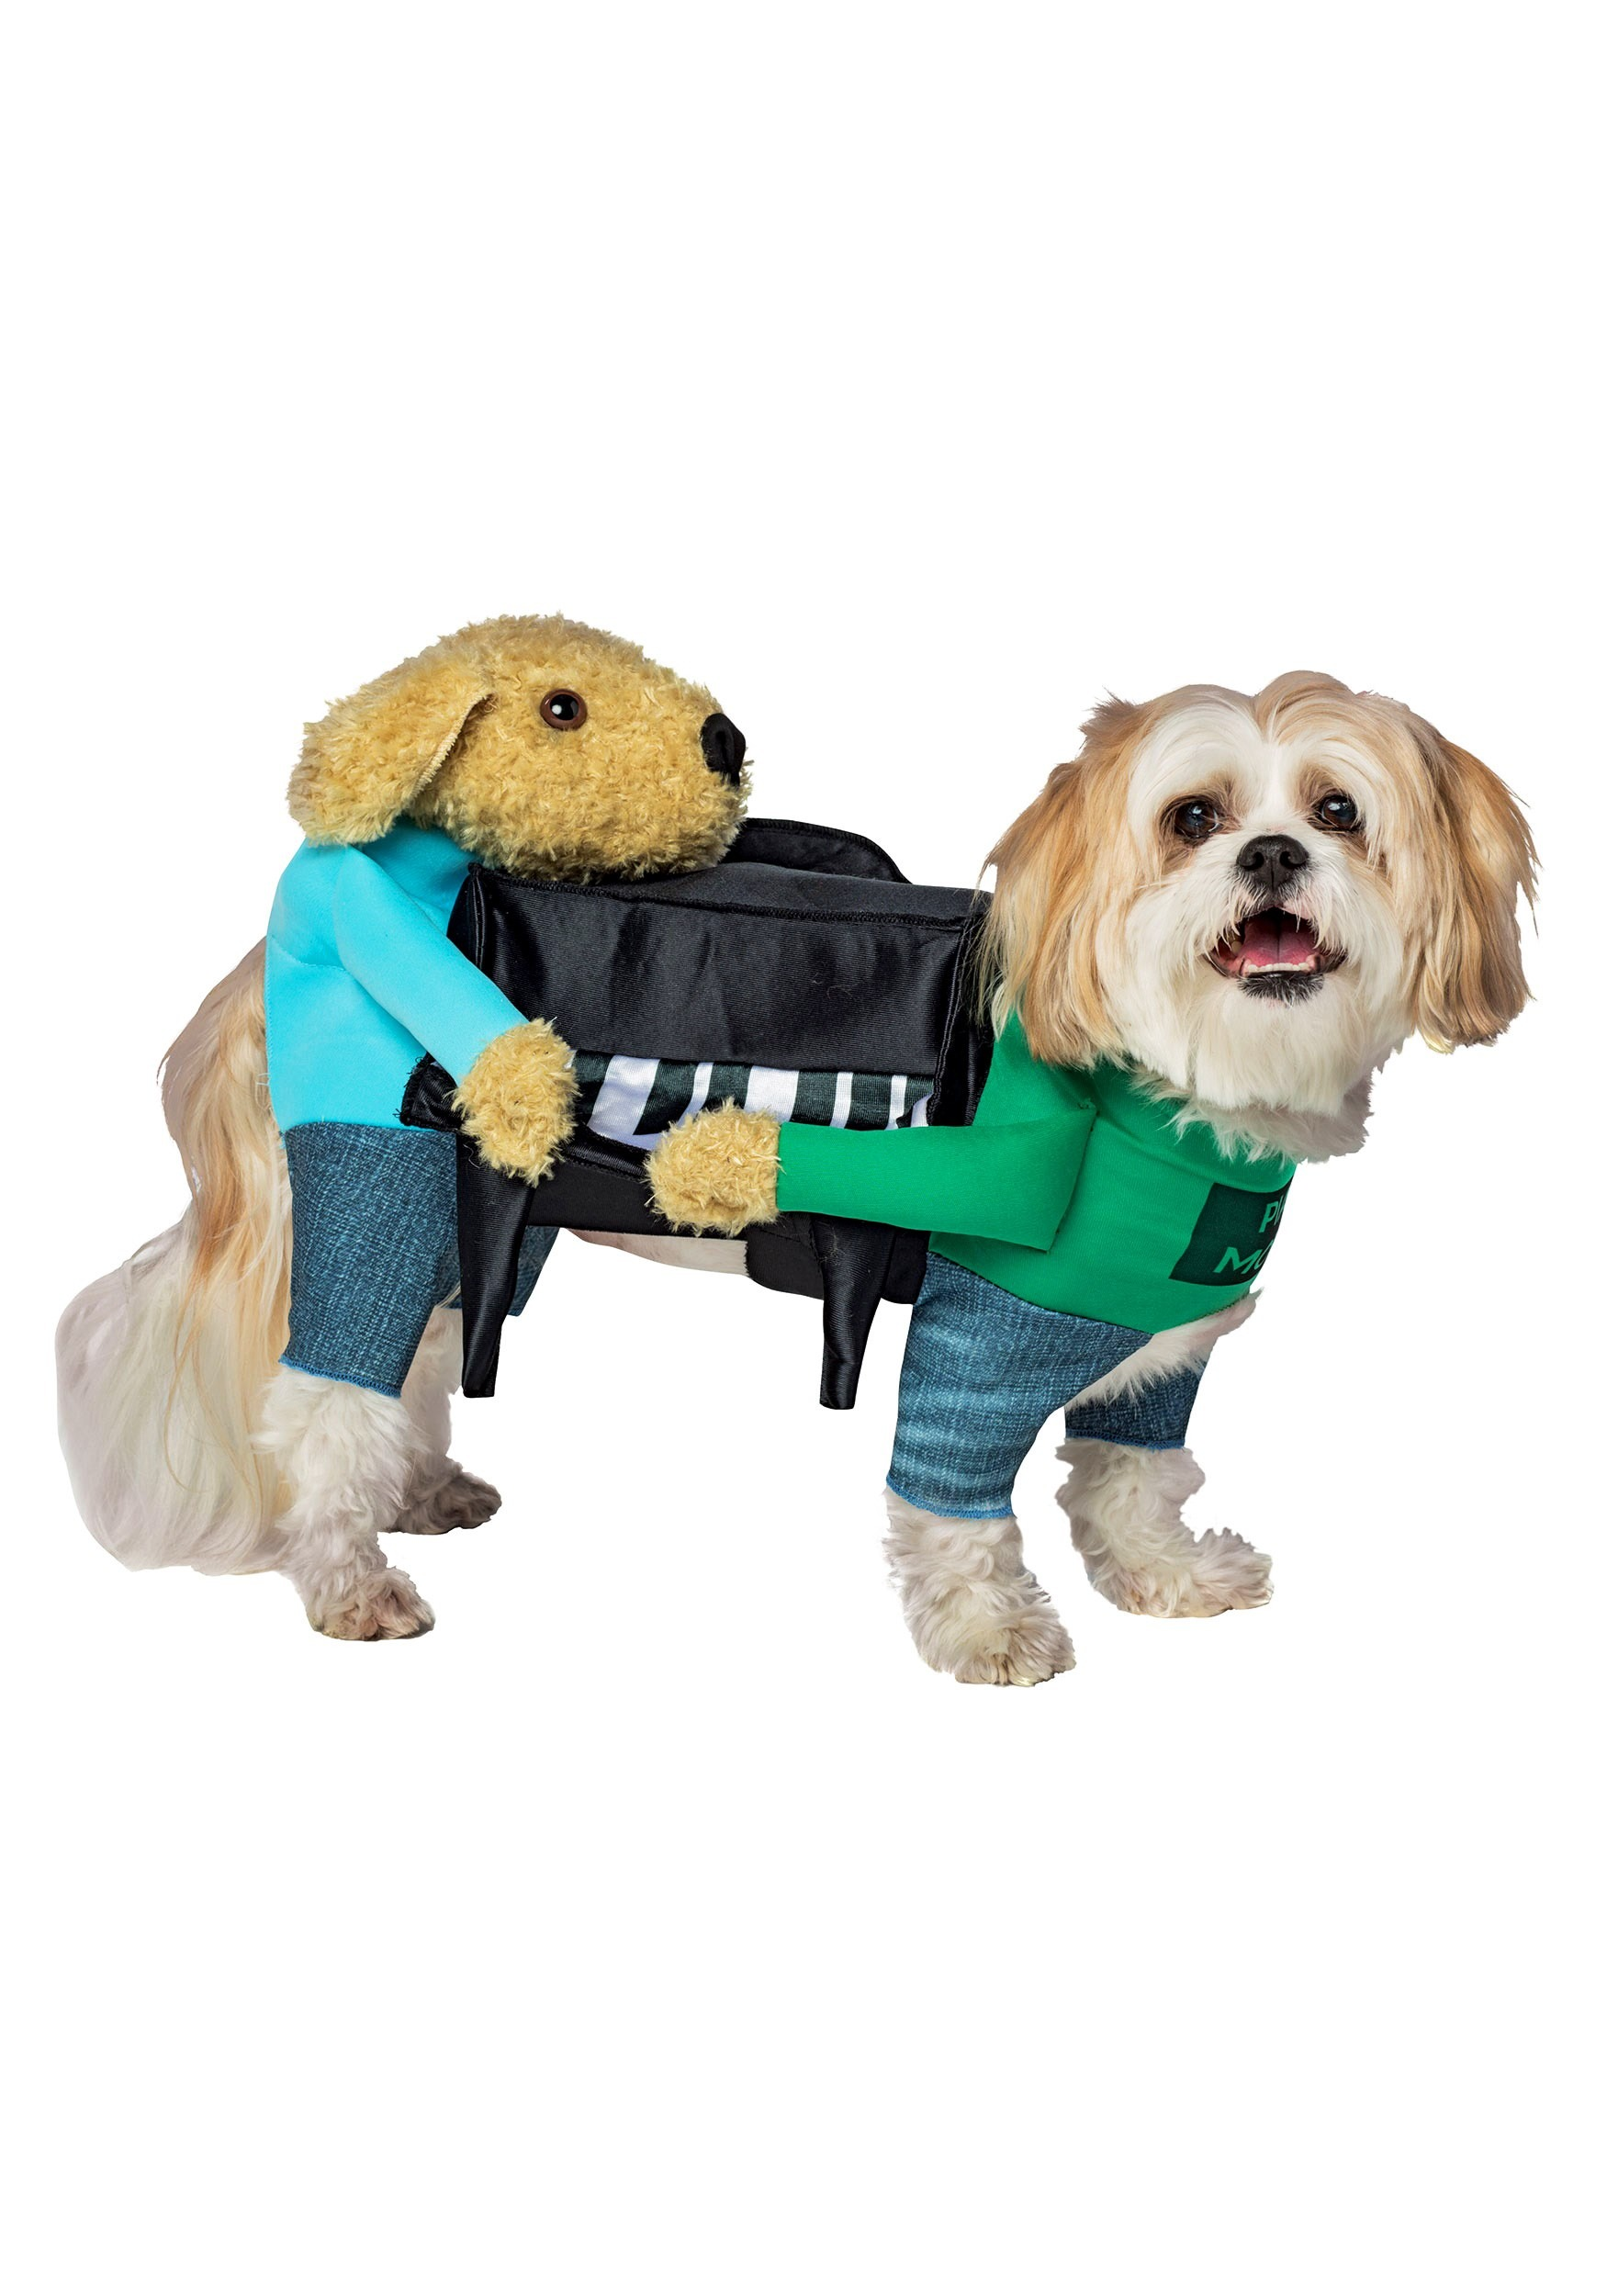 Dogs Carrying Piano Fancy Dress Costume for Pets